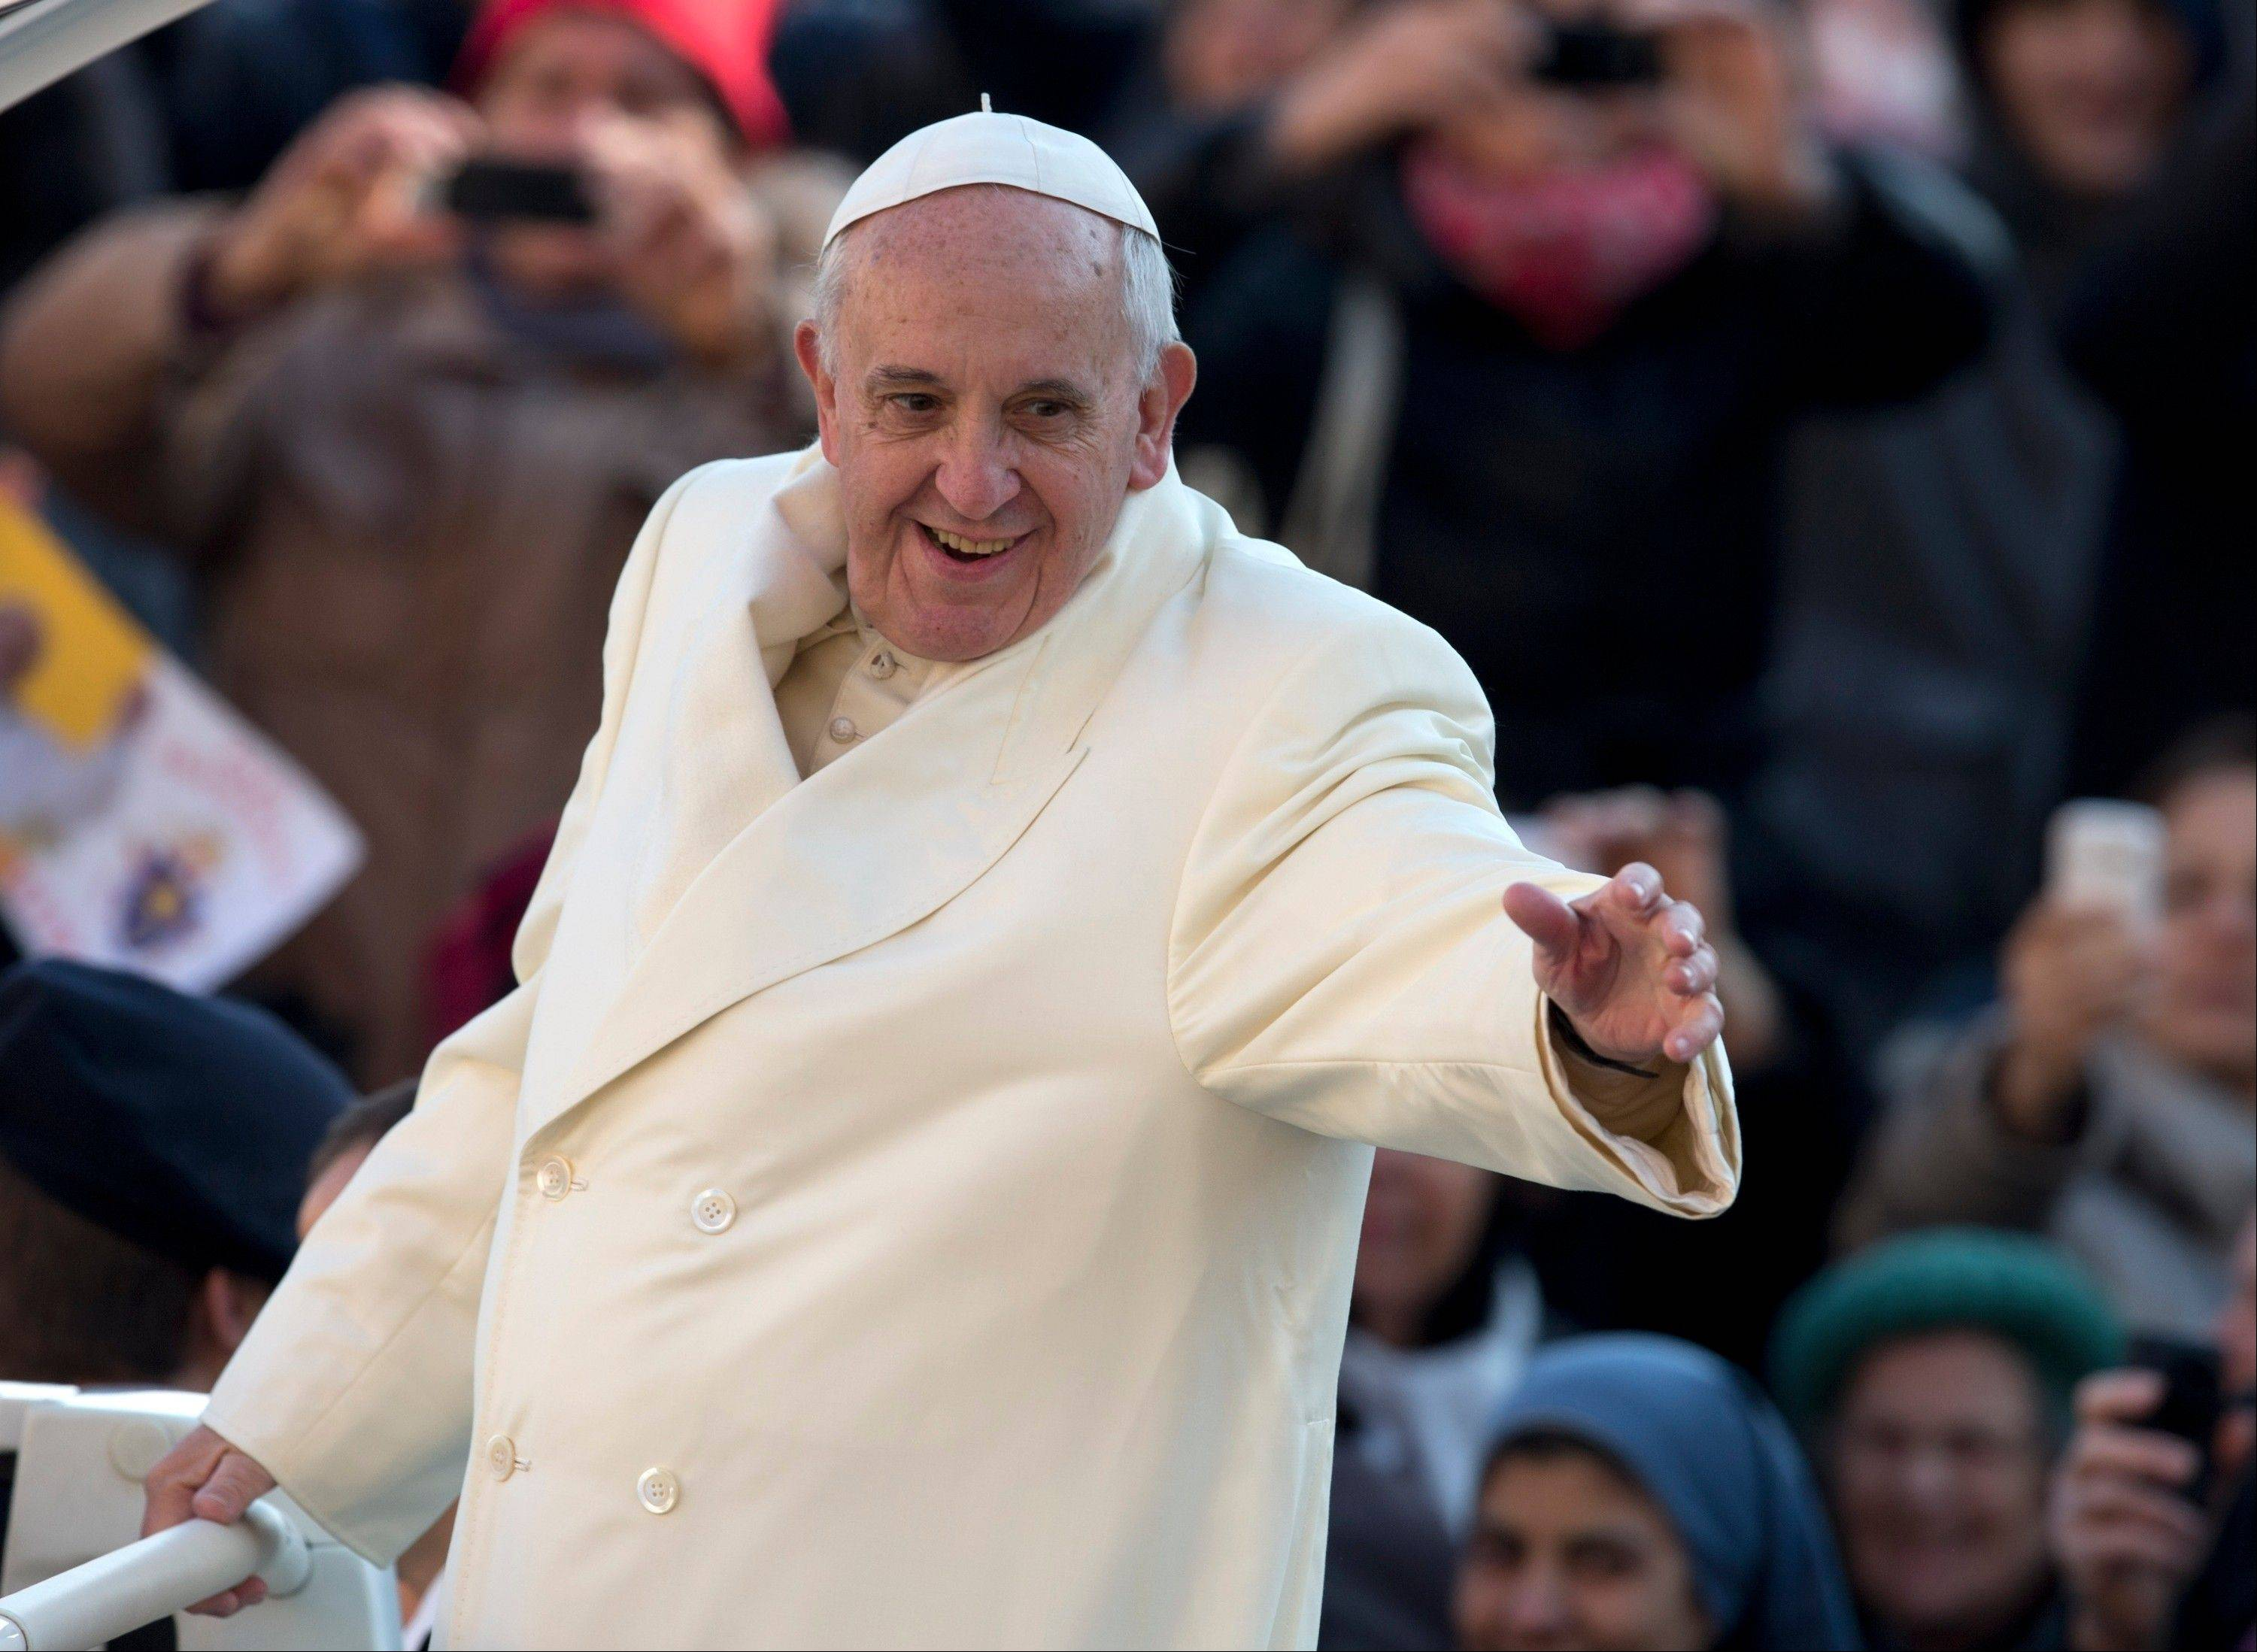 Pope Francis has been selected by Time magazine as the Person of the Year.